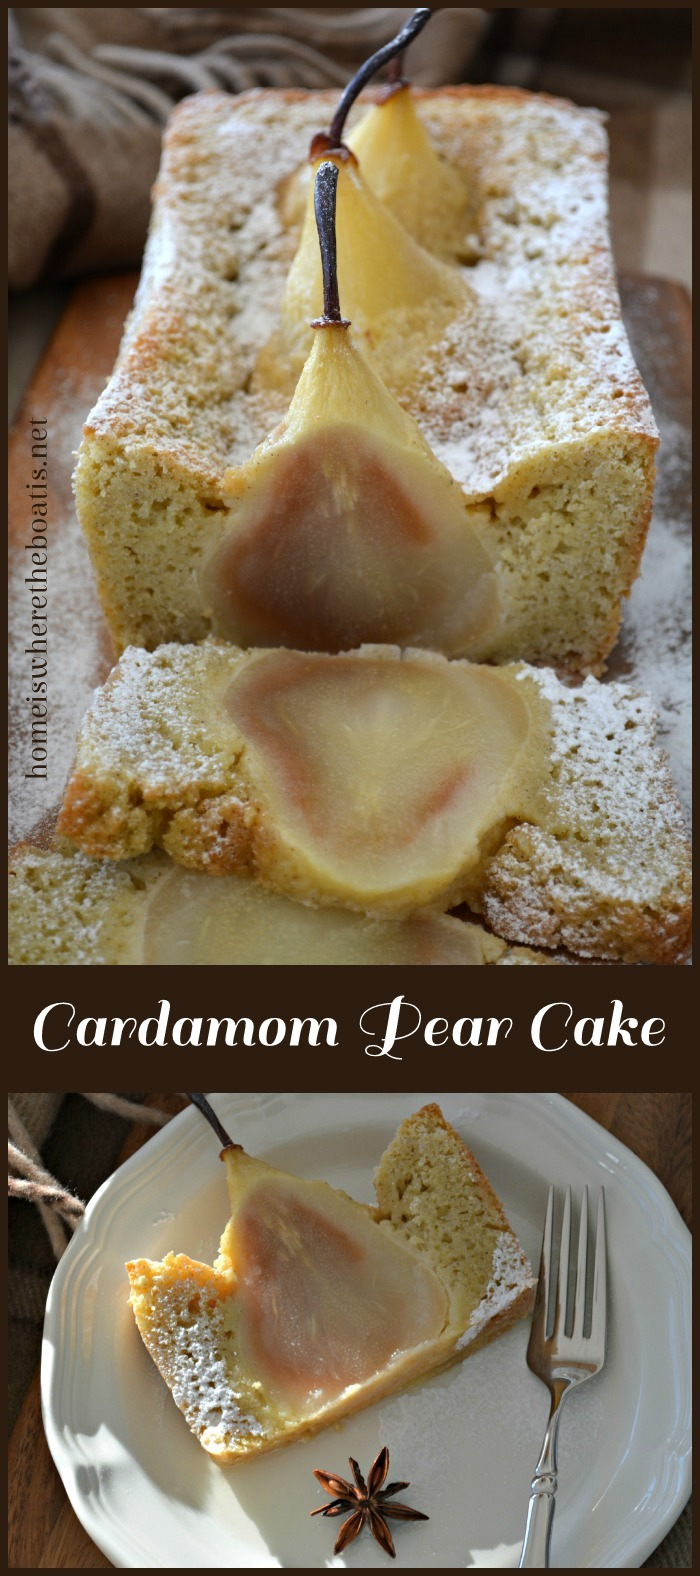 Cardamom Cake with Whole Pears